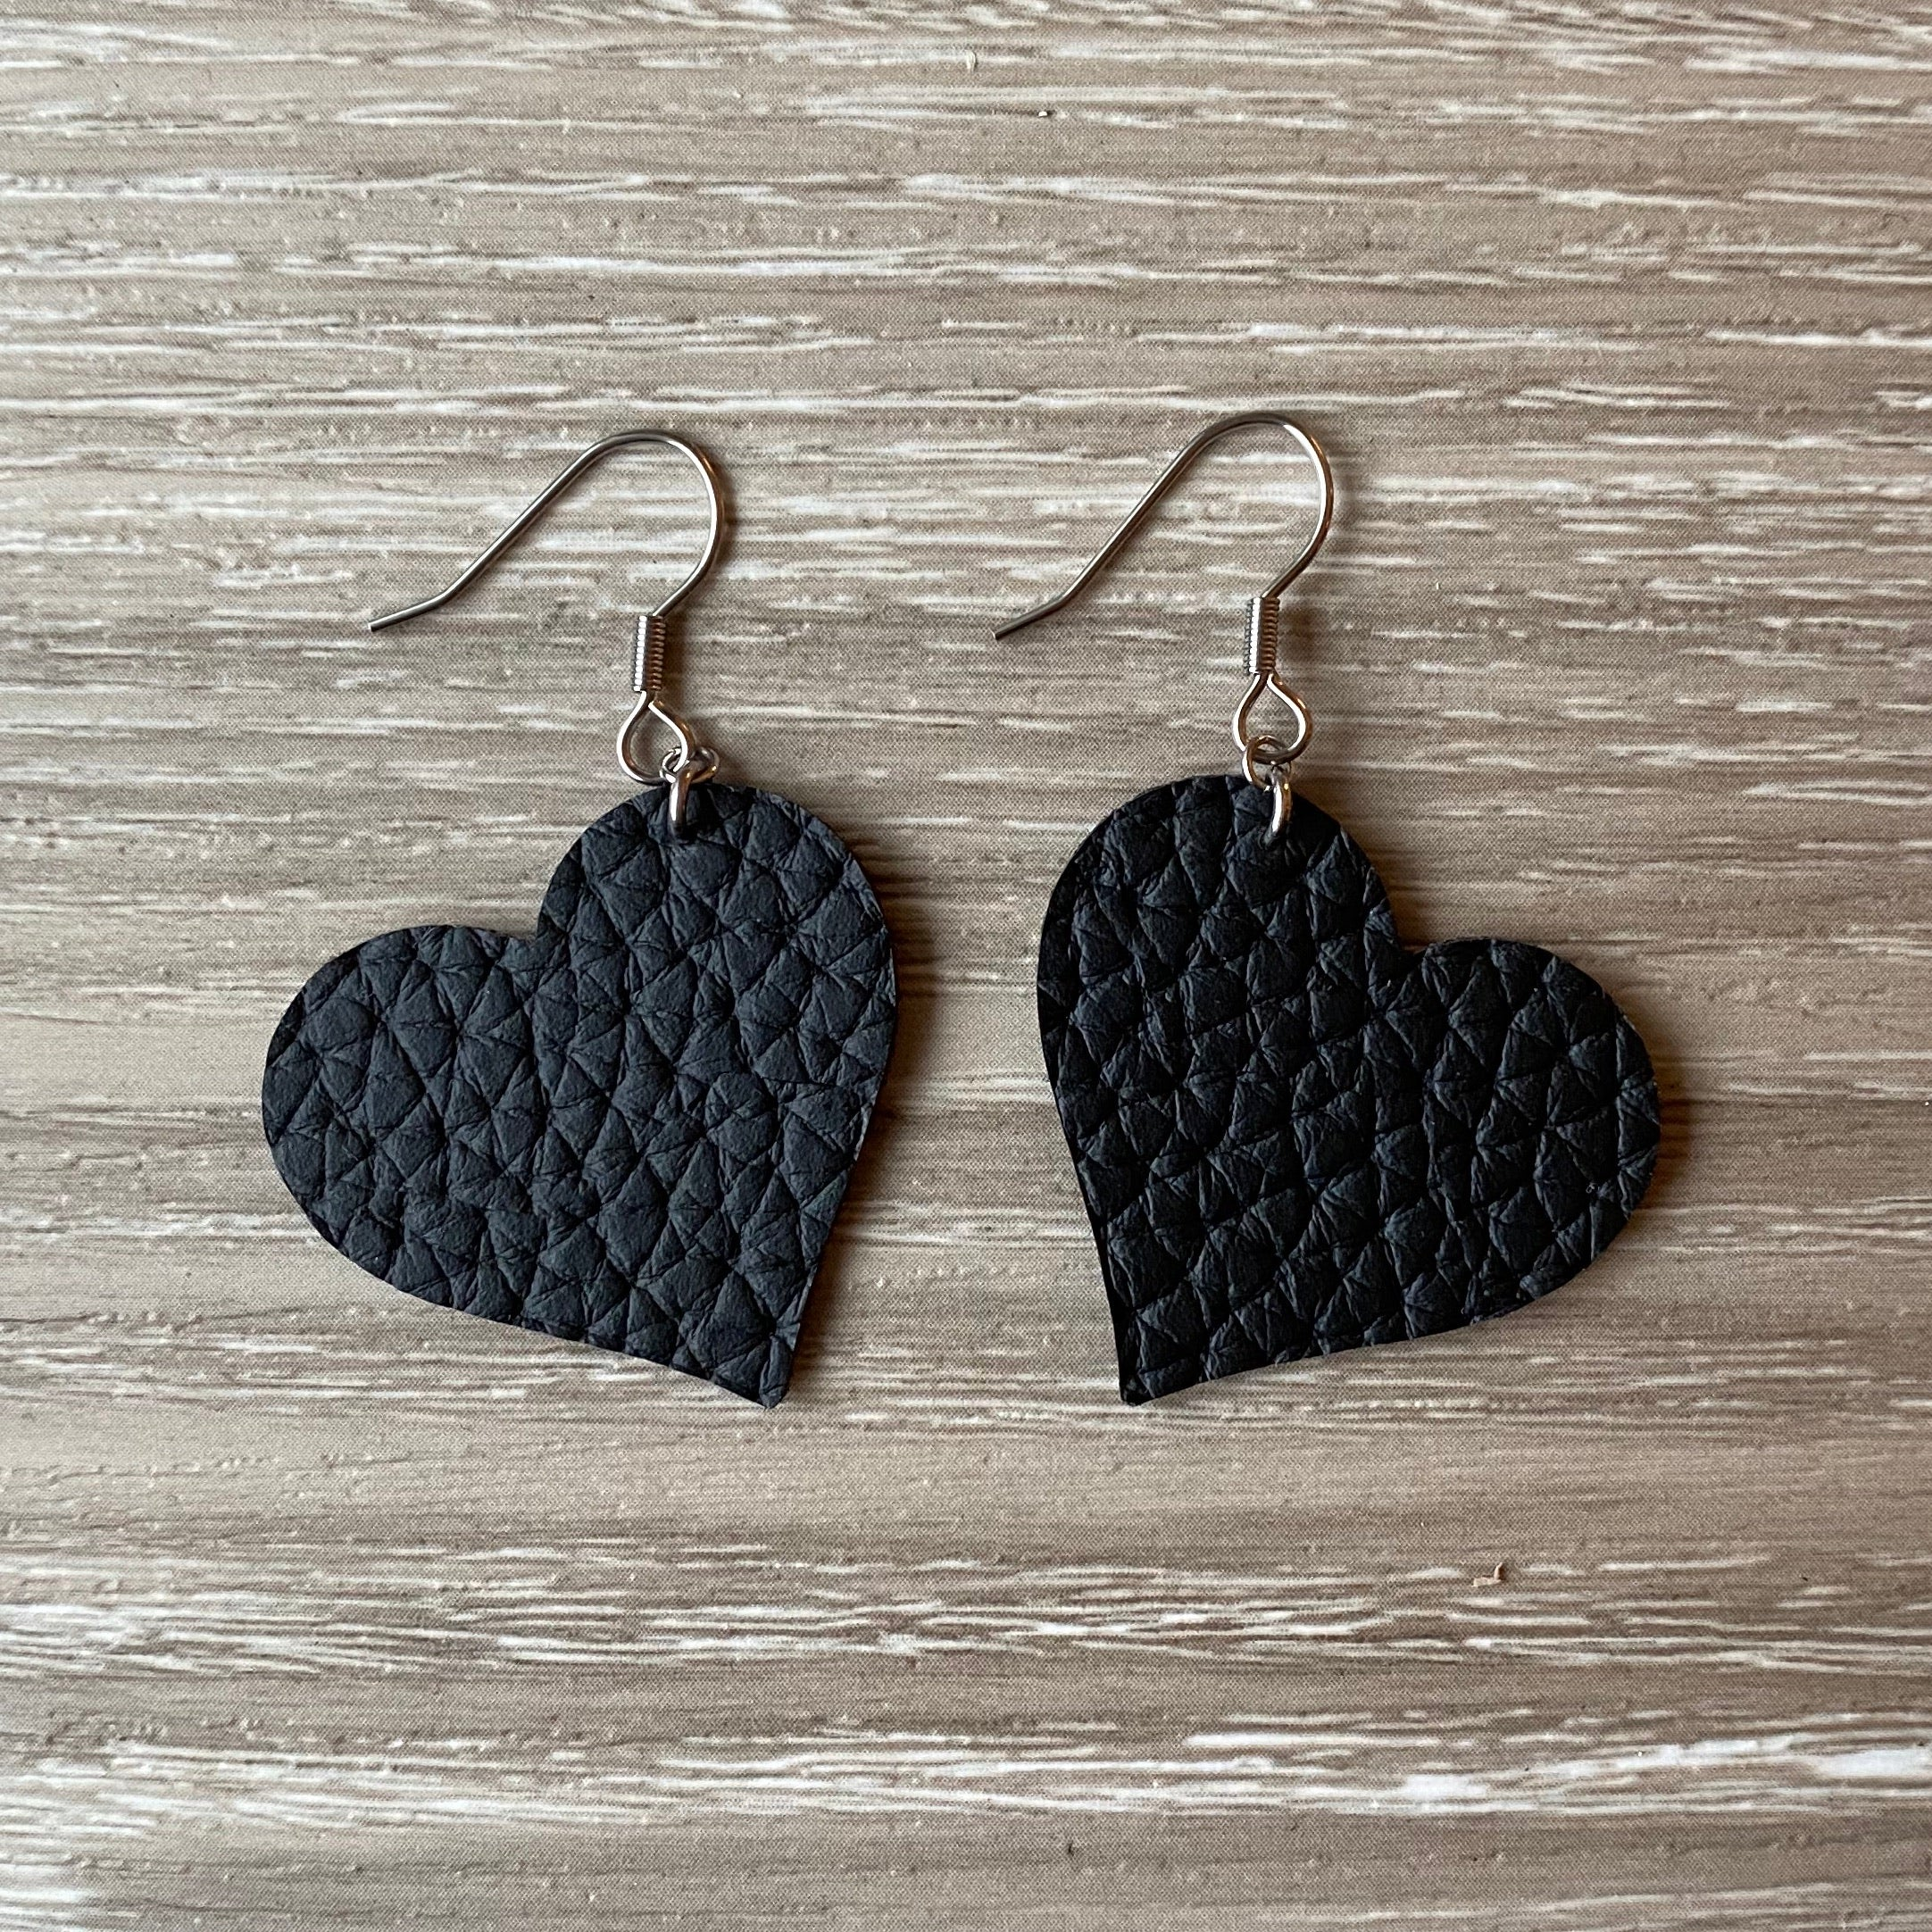 Black Heart Vegan Leather Earrings